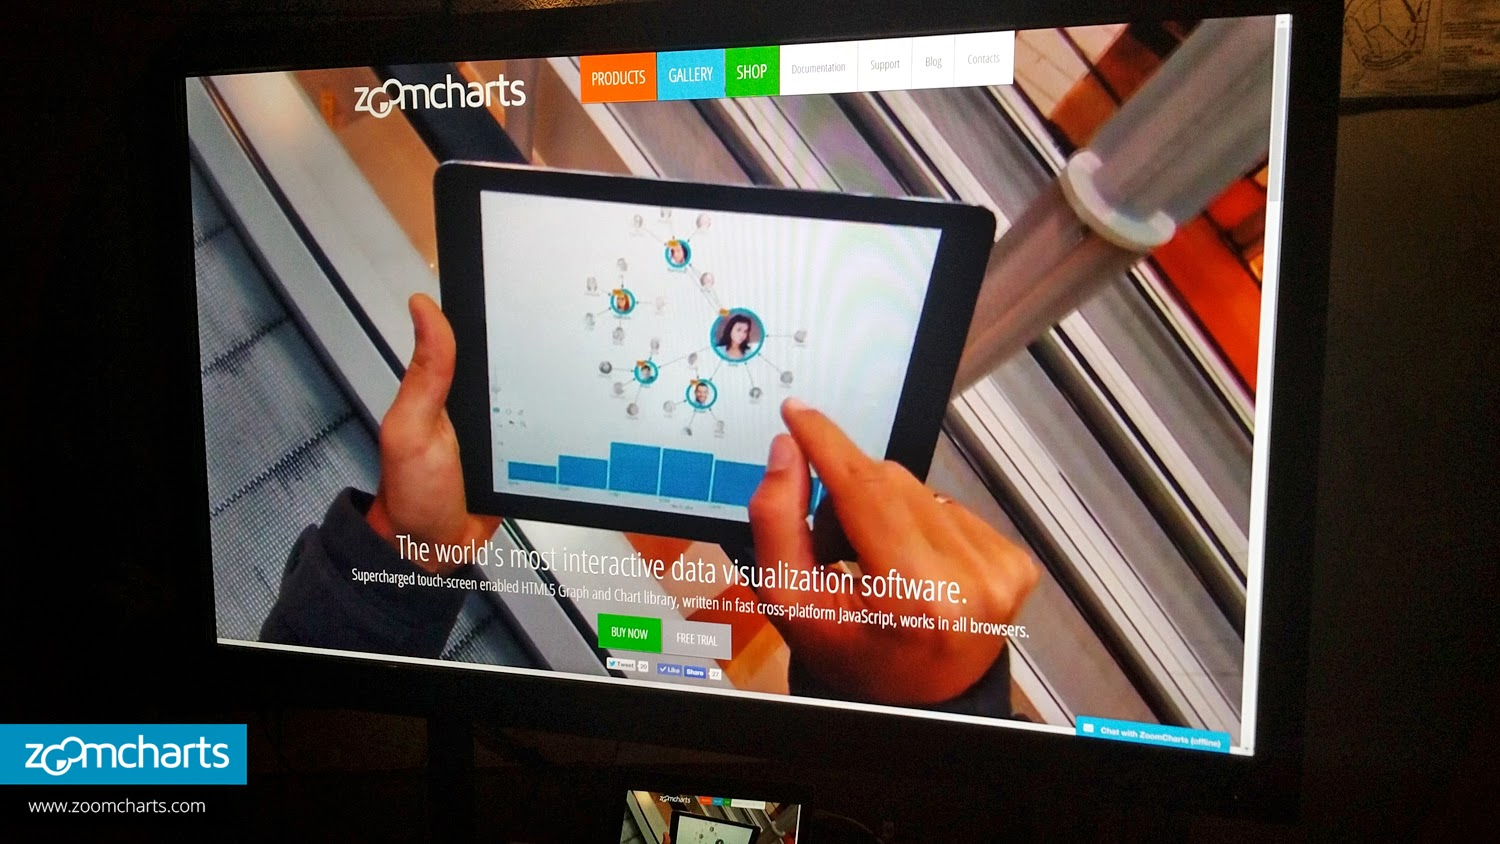 a zoomcharts presentation graces the screen at the popular zoomcharts demo booth at the techchill baltics 2015 technology startup conference on february 10